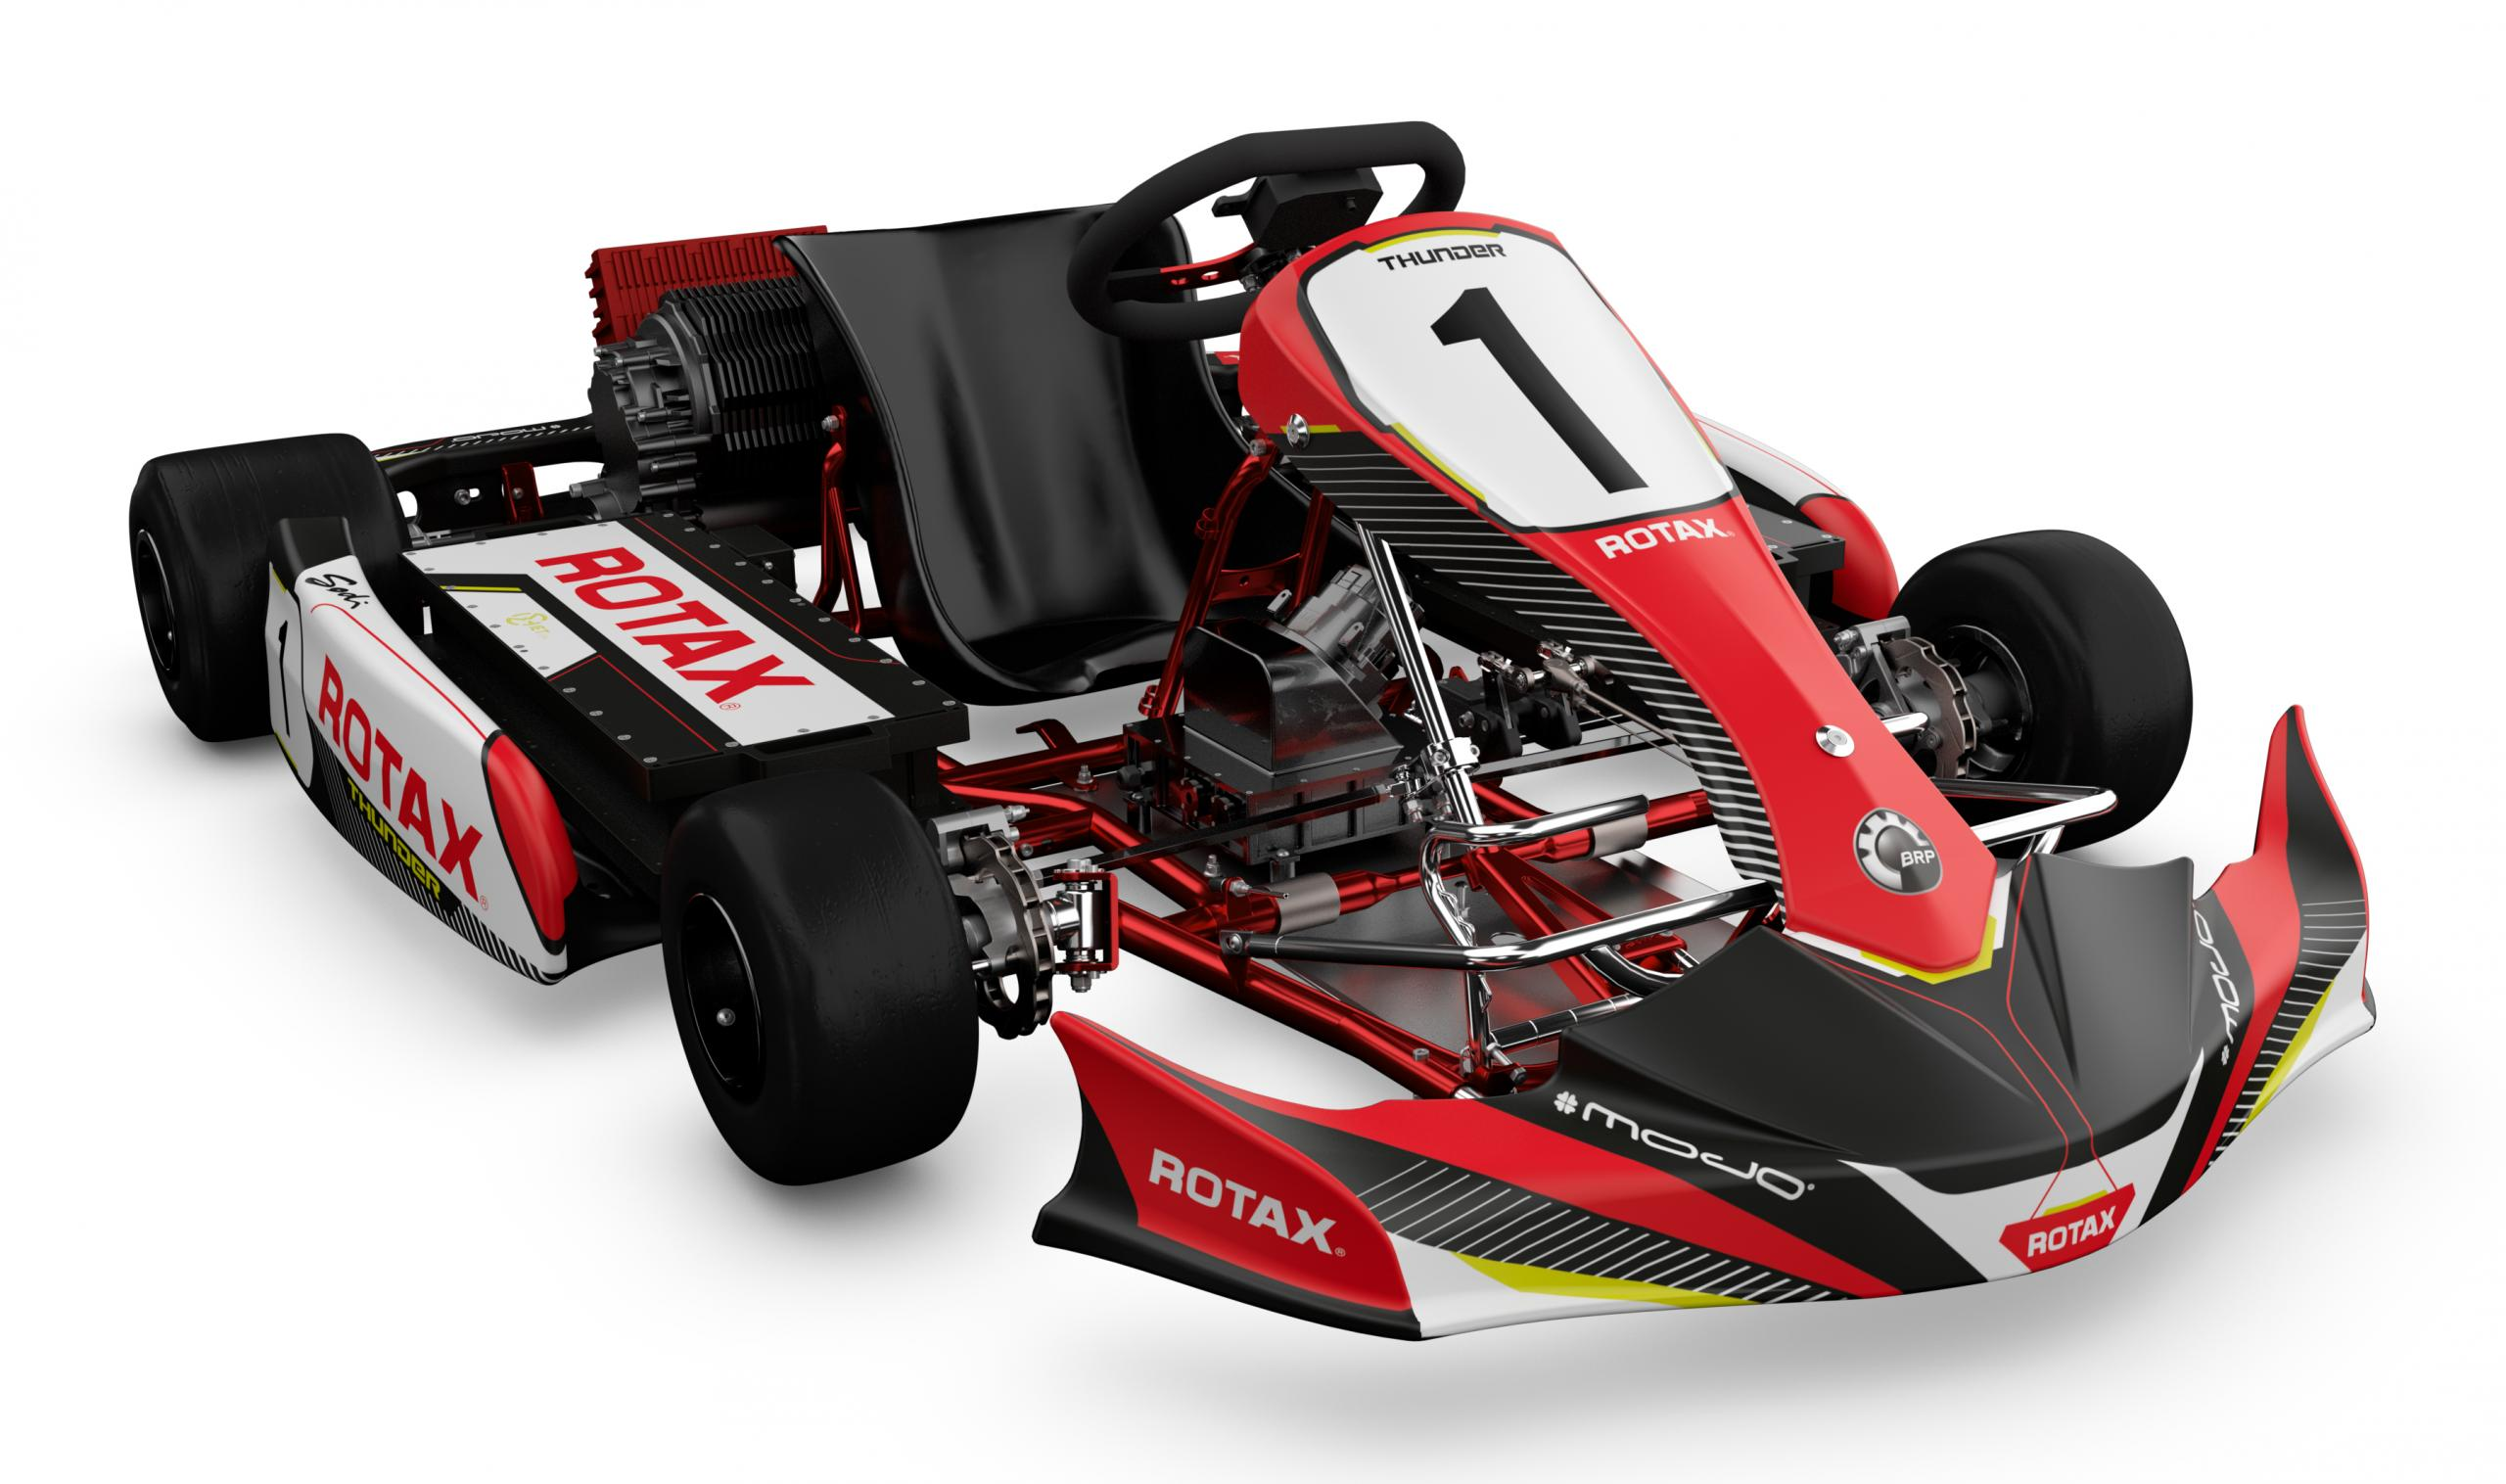 Brp Launches A Whole New Kart Racing Experience With Its